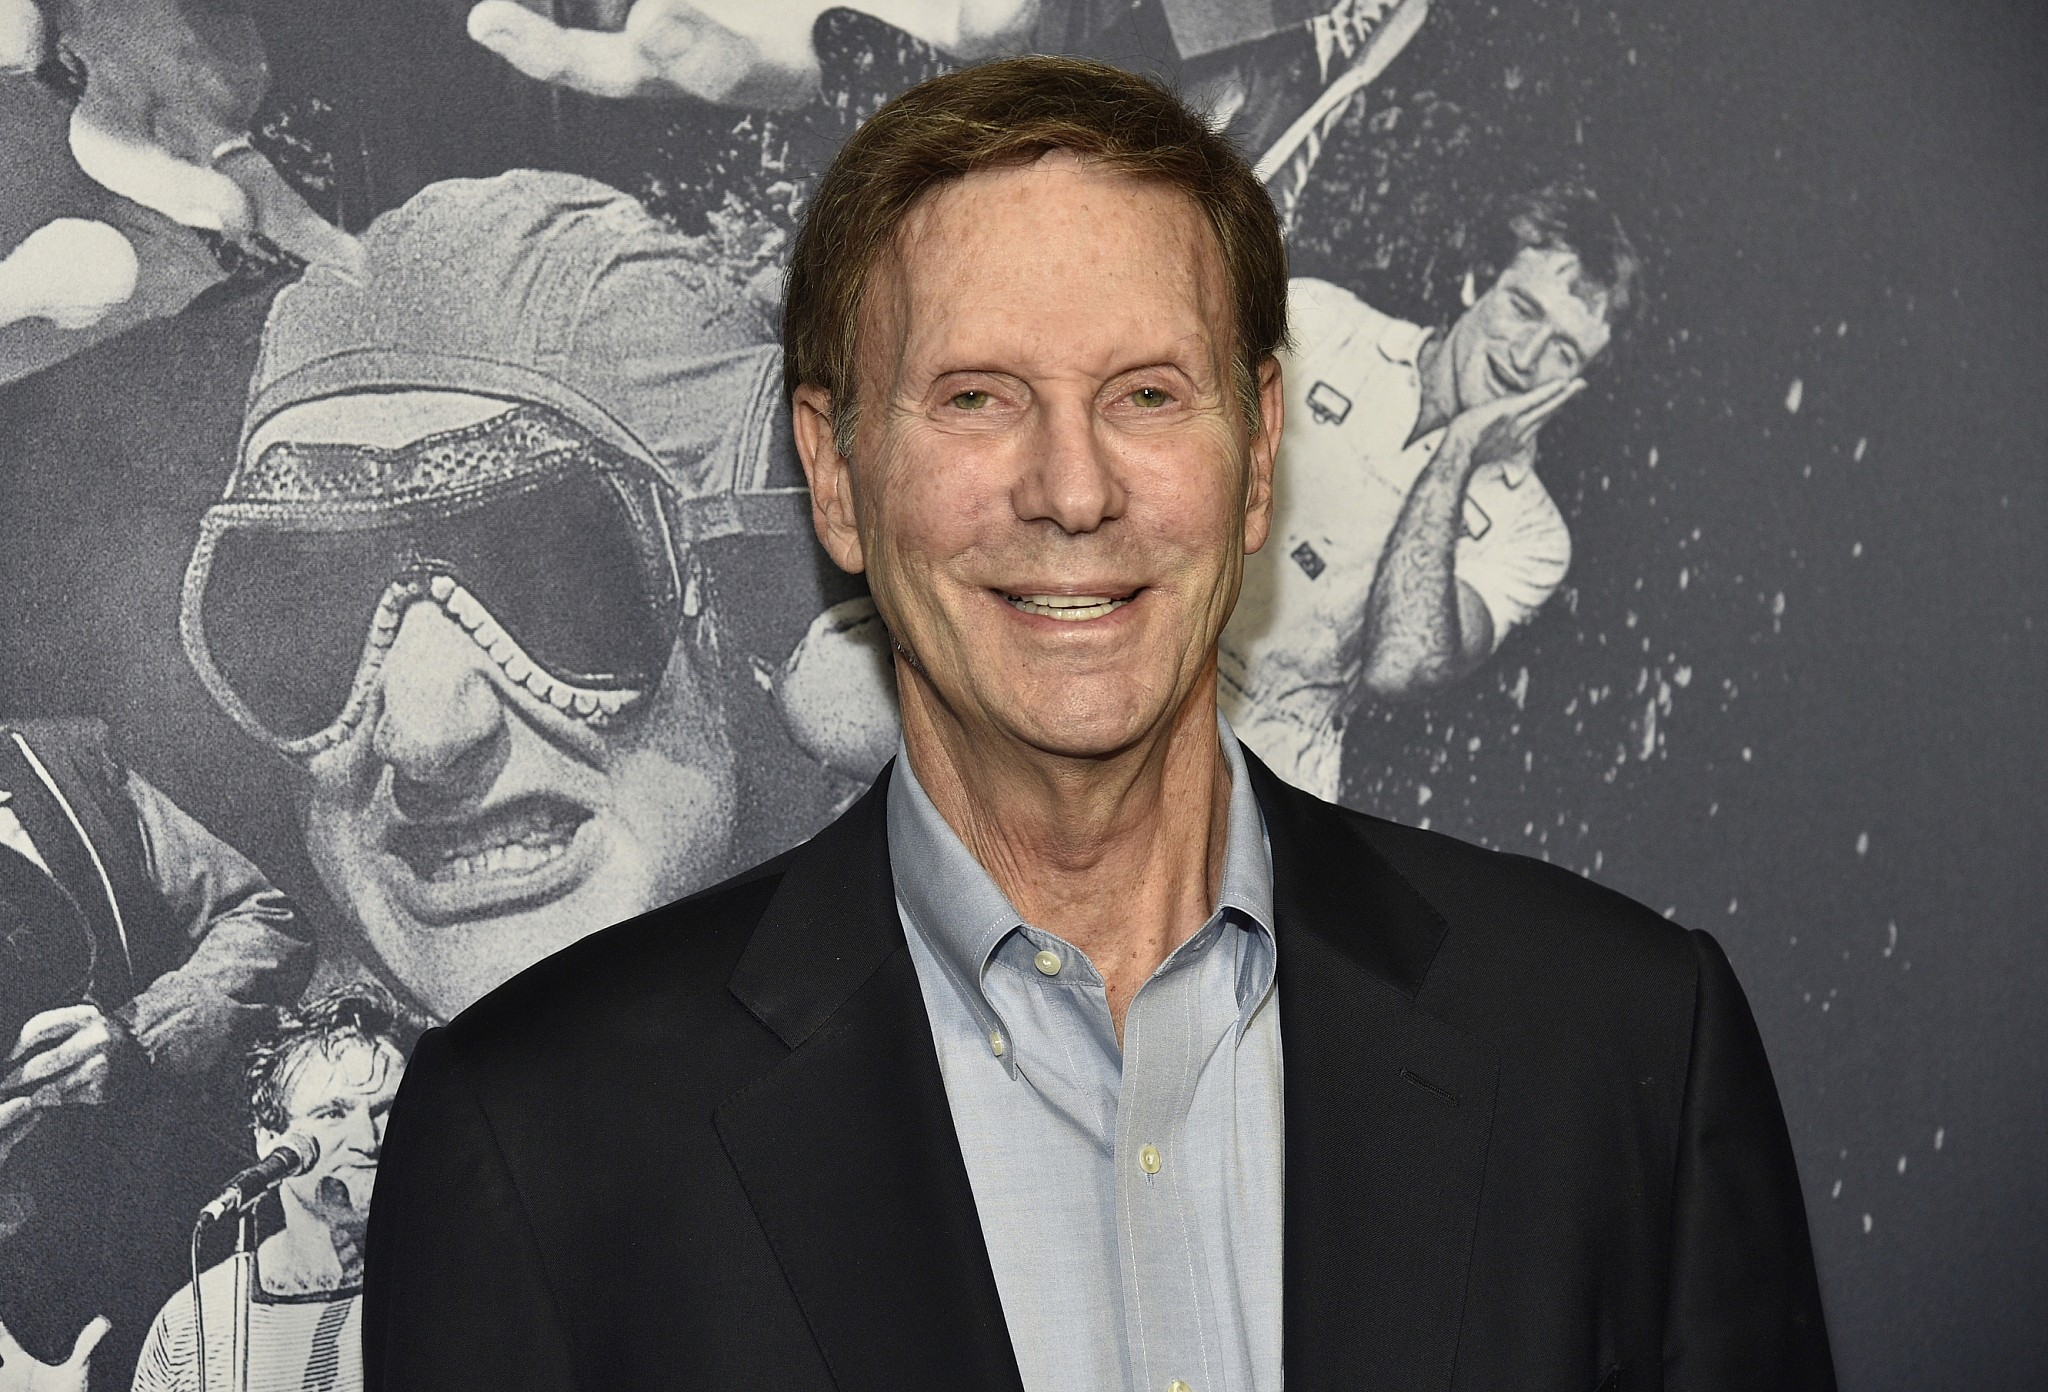 Bob Einstein, of 'Curb' and 'Super Dave' Fame, Dies at 76